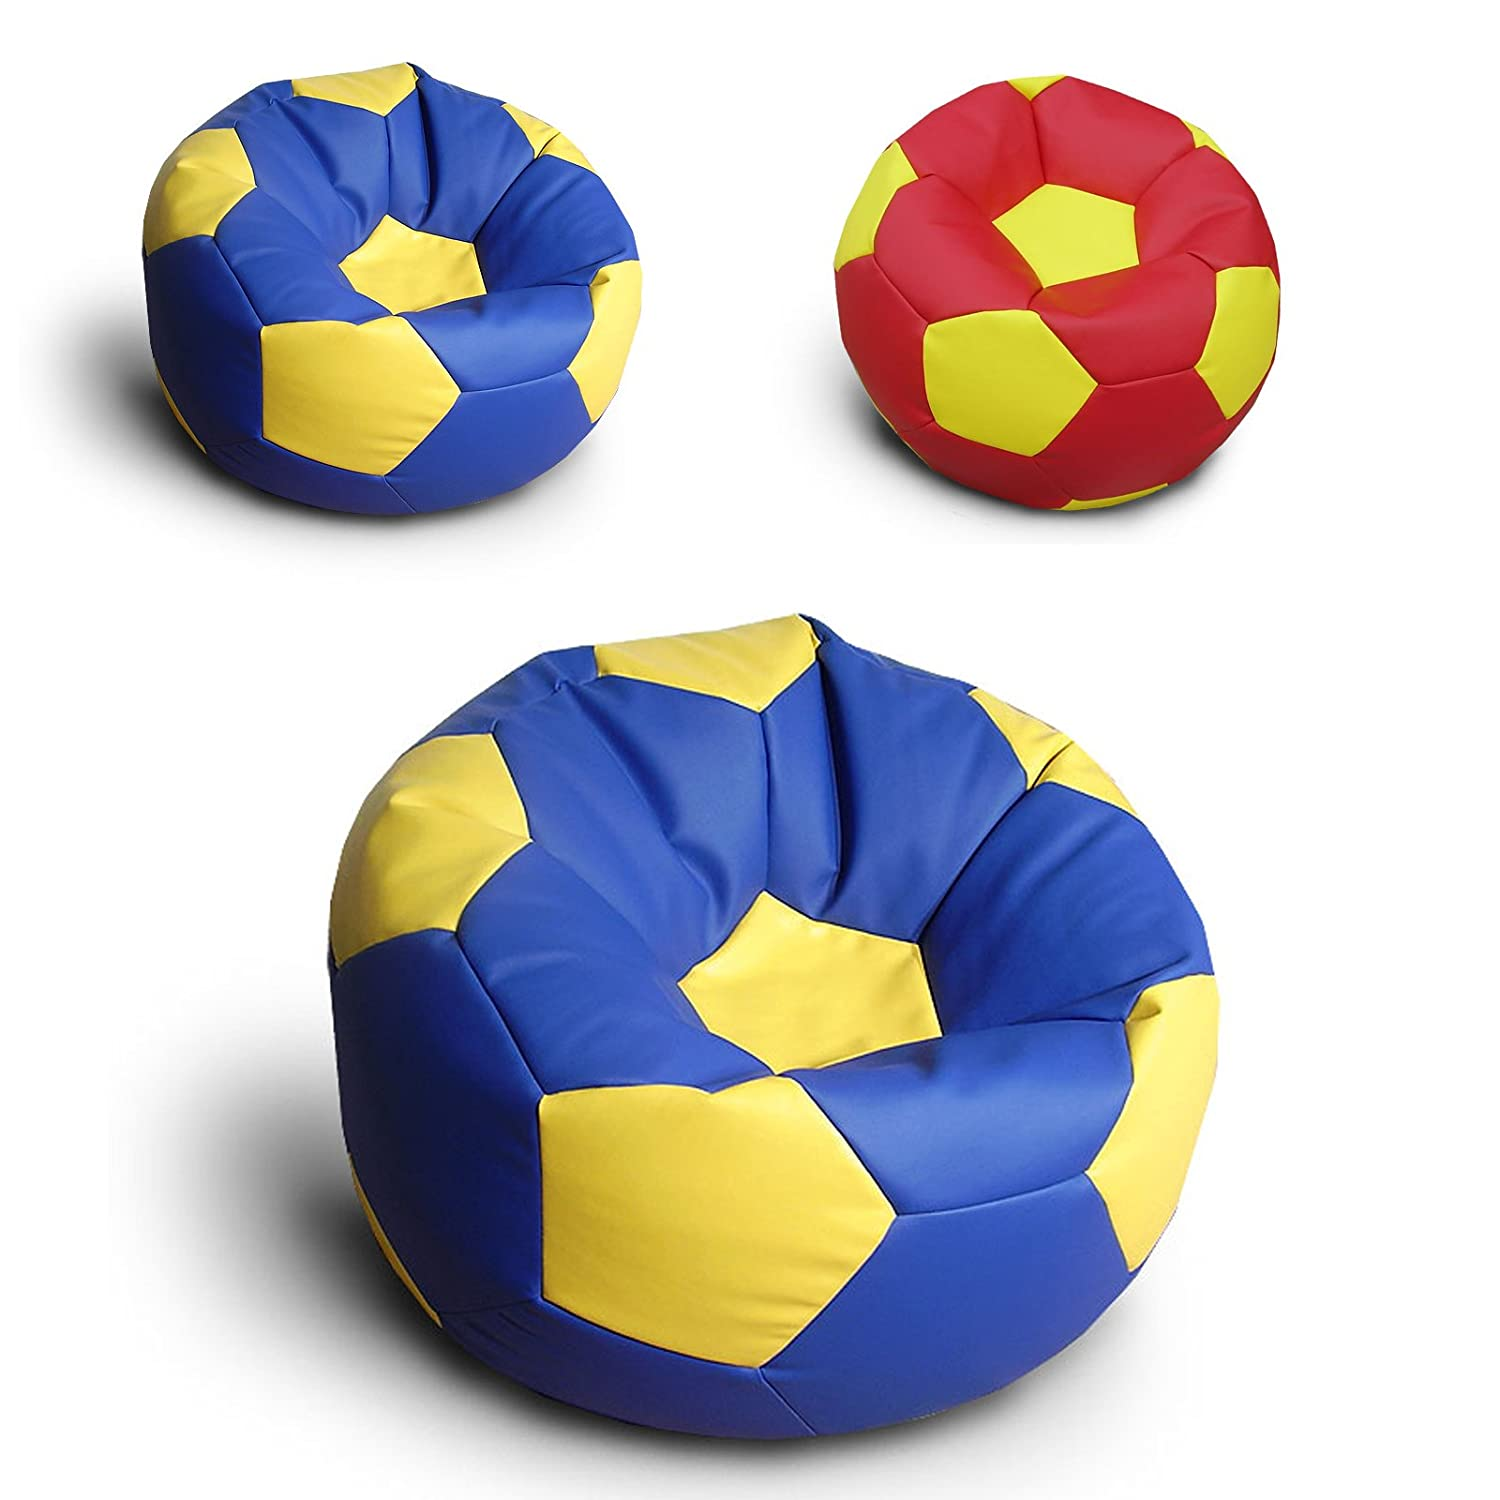 Pleasant Comfortable Gaming Beanbag Faux Leather Football Soccer Chelsea Manchester United Bean Bag Chair Blue Yellow Chelsea Style Creativecarmelina Interior Chair Design Creativecarmelinacom